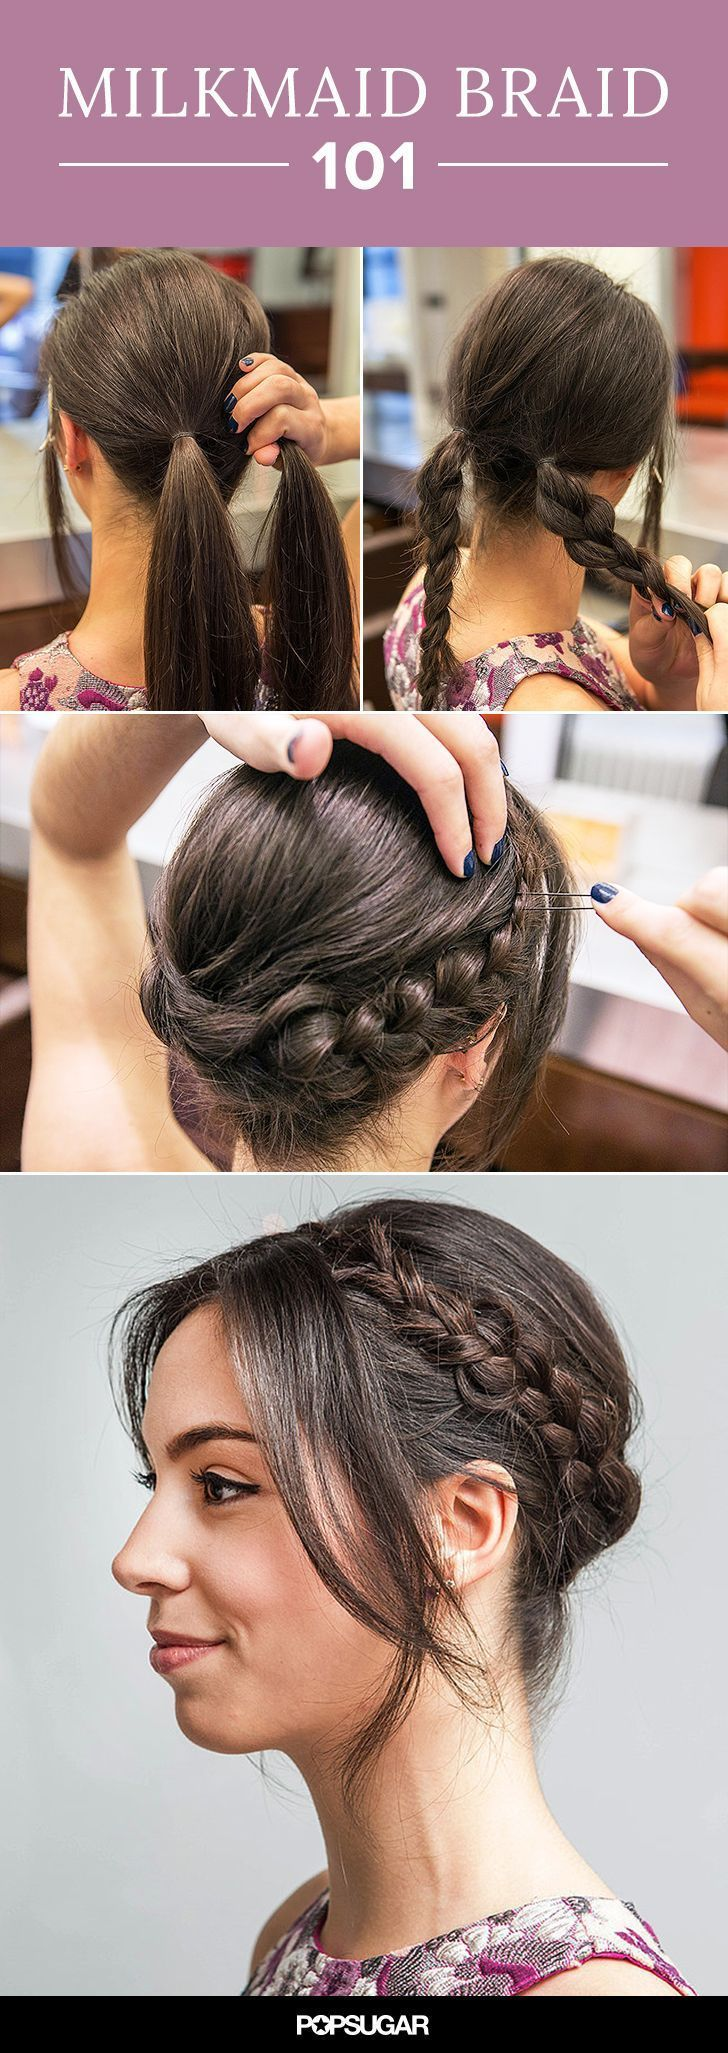 hair styles with braiding hair how to get the milkmaid braid right the golden globes 4358 | 45129d5ad956cc4358f019eeee86a5f2